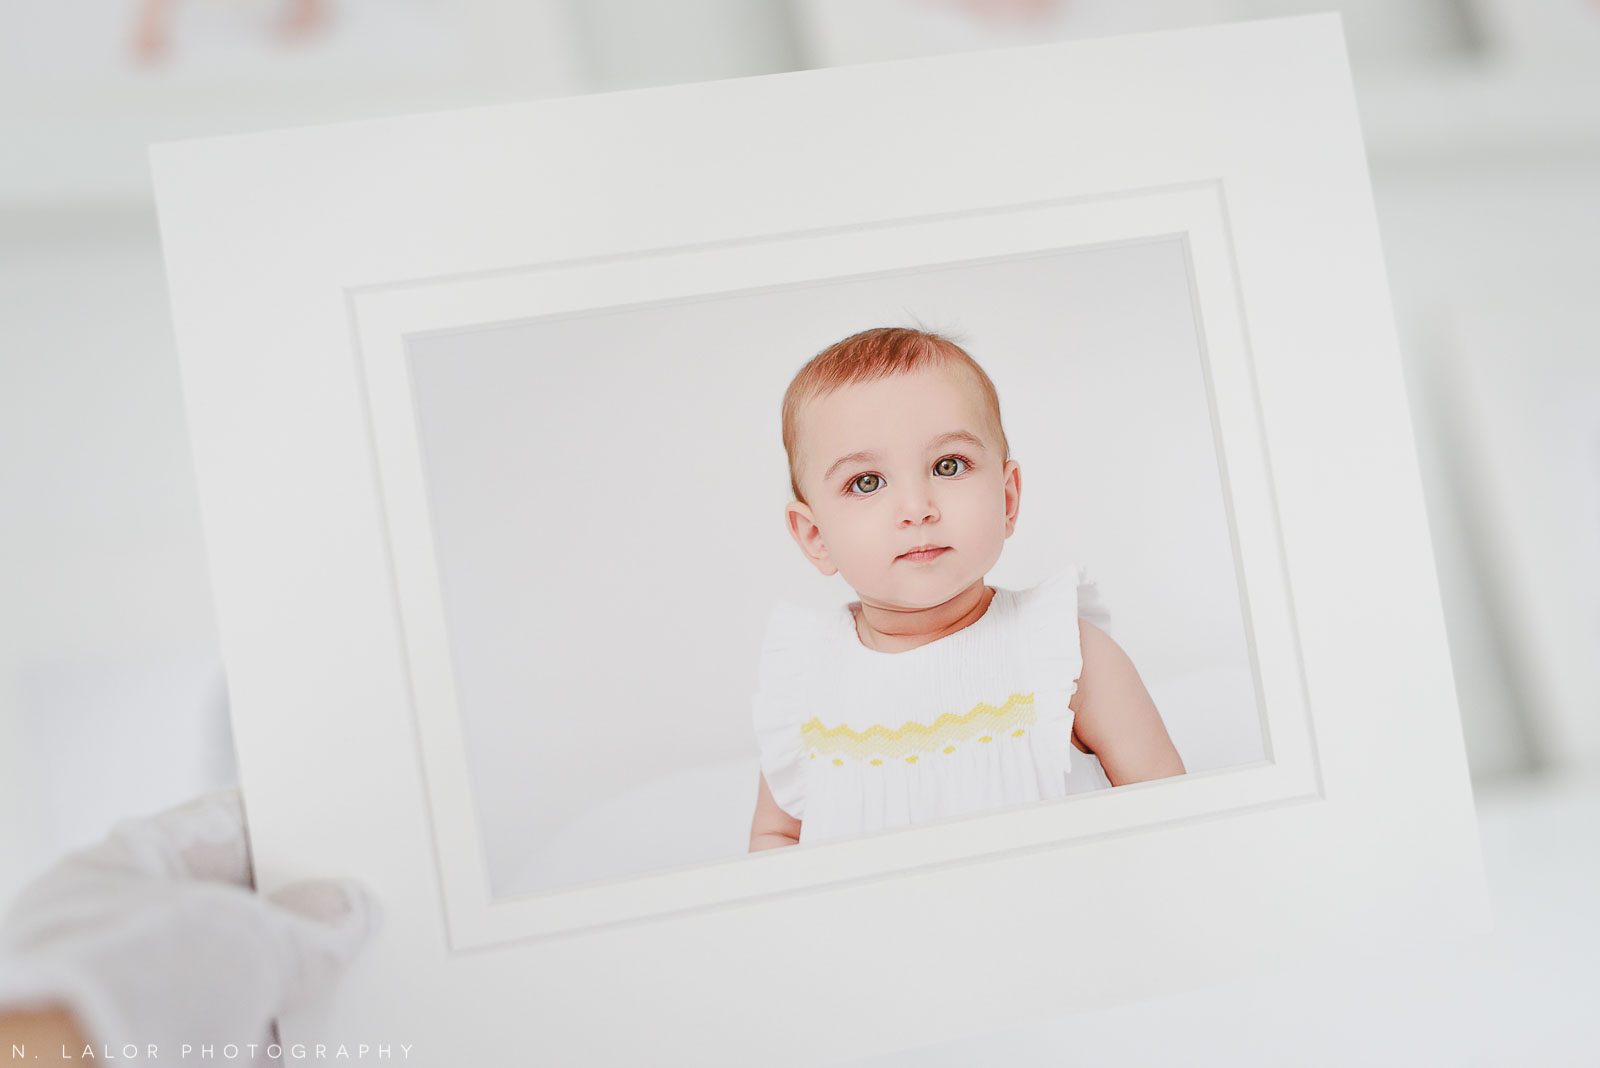 Image of an archival museum-quality print of a baby girl. Portrait by N. Lalor Photography, Studio located in Greenwich Connecticut.